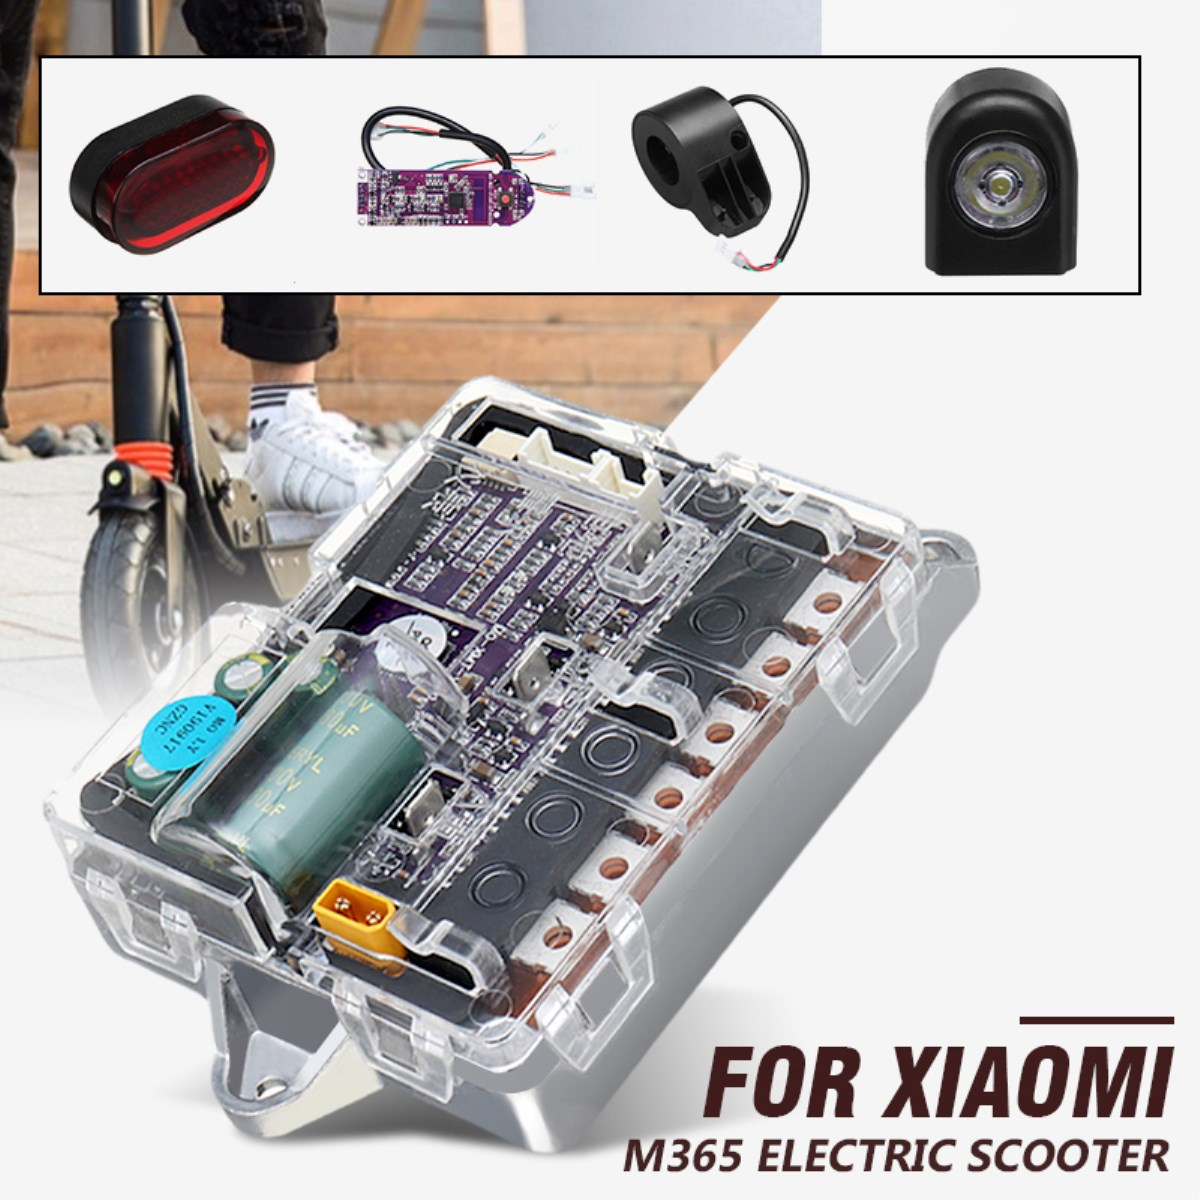 Electric Skateboard Skate Scooter For XIAOMI m365 Motherboard Skate board Motor Controller Main Board ESC Substitute KitElectric Skateboard Skate Scooter For XIAOMI m365 Motherboard Skate board Motor Controller Main Board ESC Substitute Kit